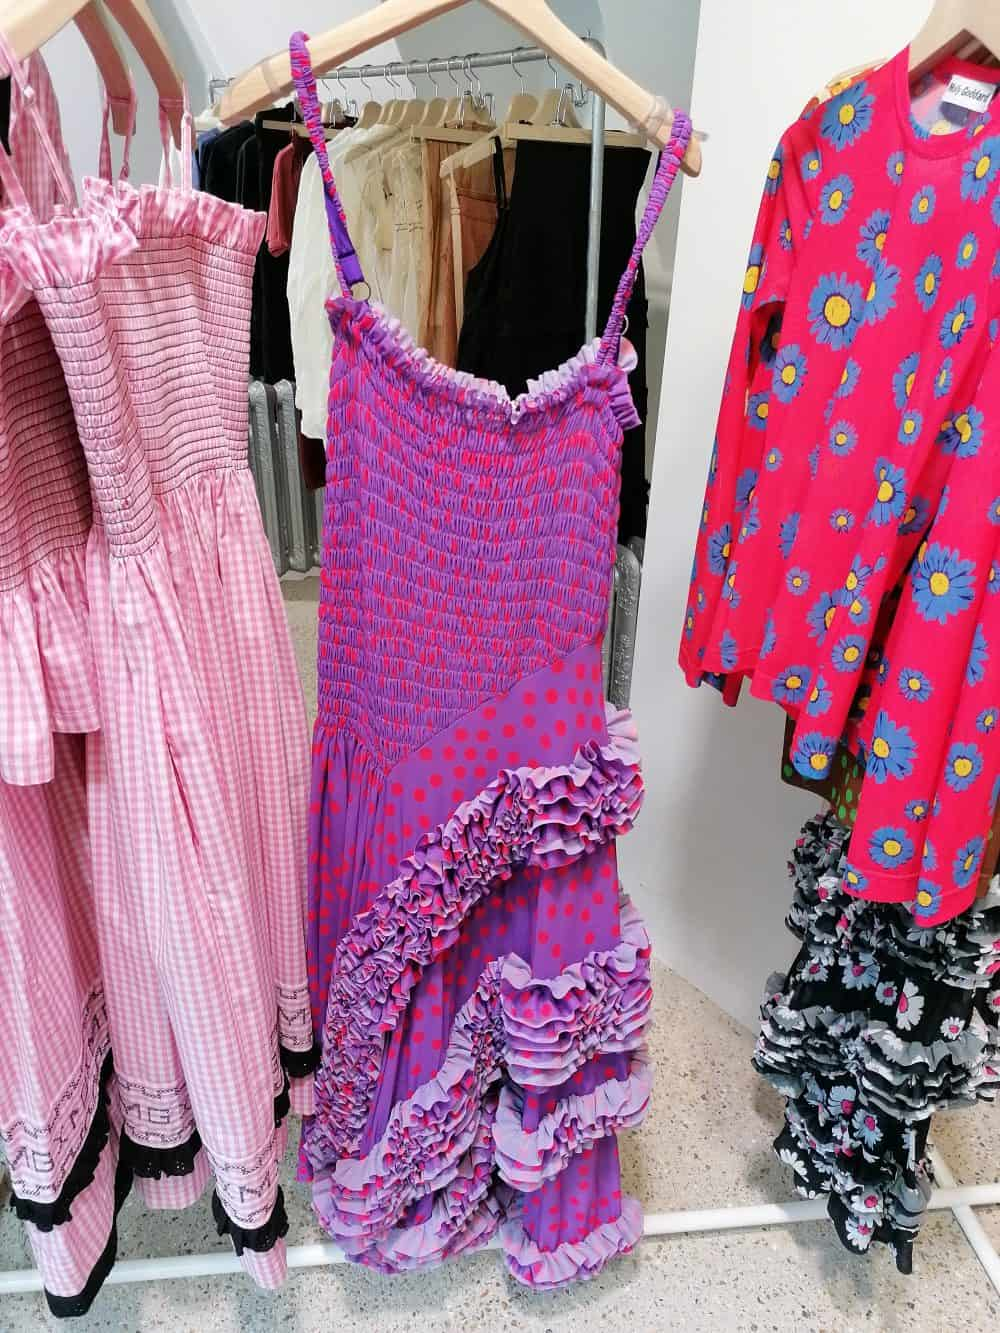 dresses by fashion designer Molly Goddard, Dover Street Market, Latest in Design Tour, Fashion Tours London